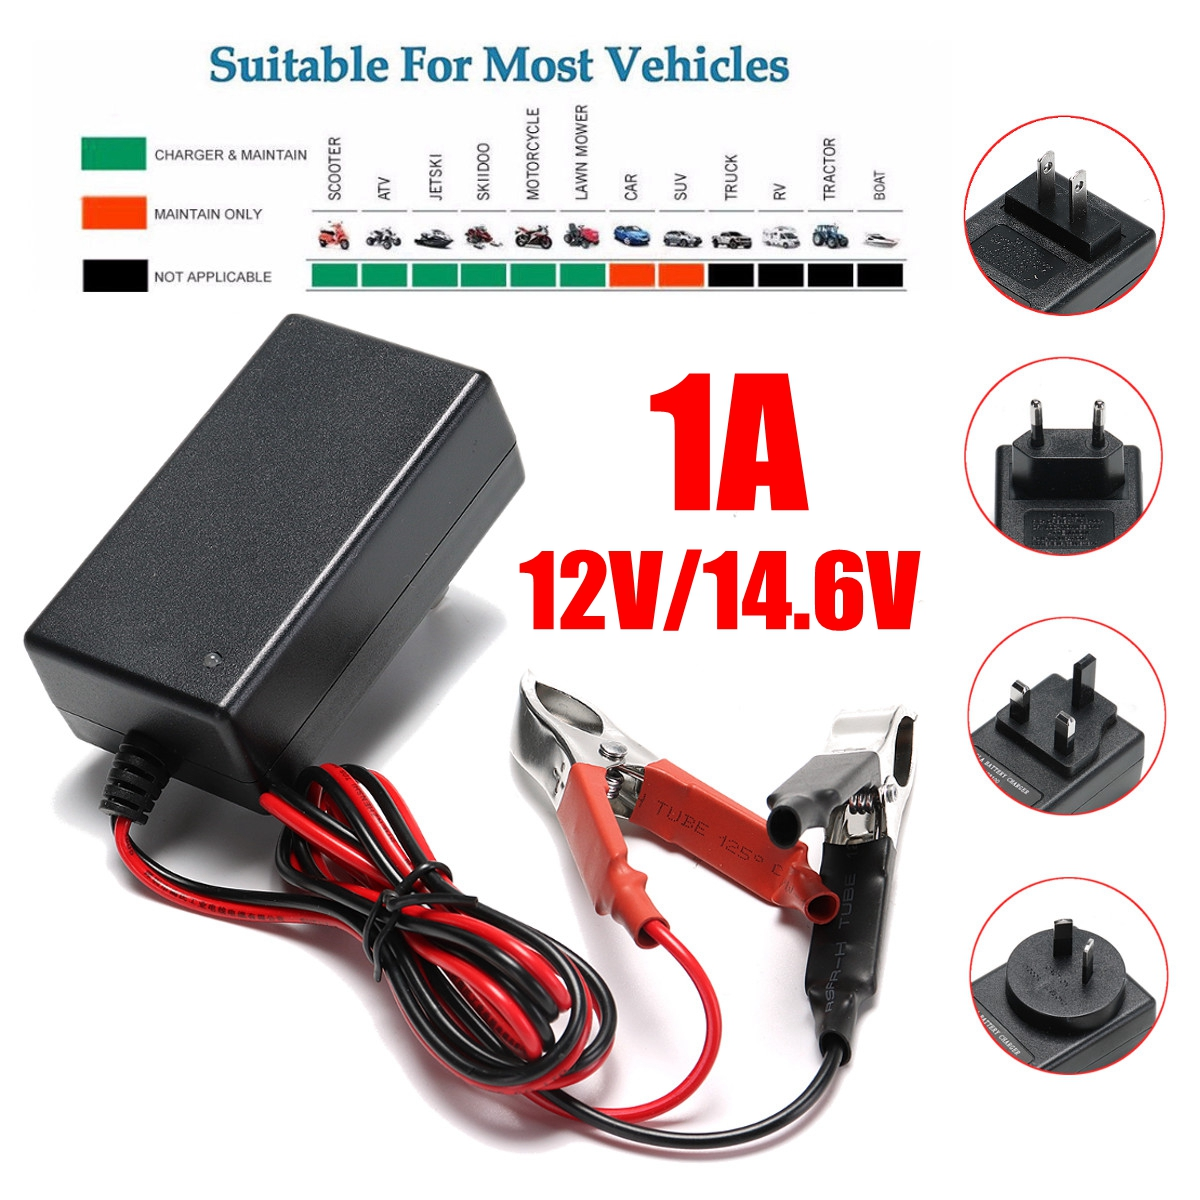 2AH 10AH Smart Battery Charger Maintainer Tender Trickle 6V 12V Automobile Motorcycle New US EU UA